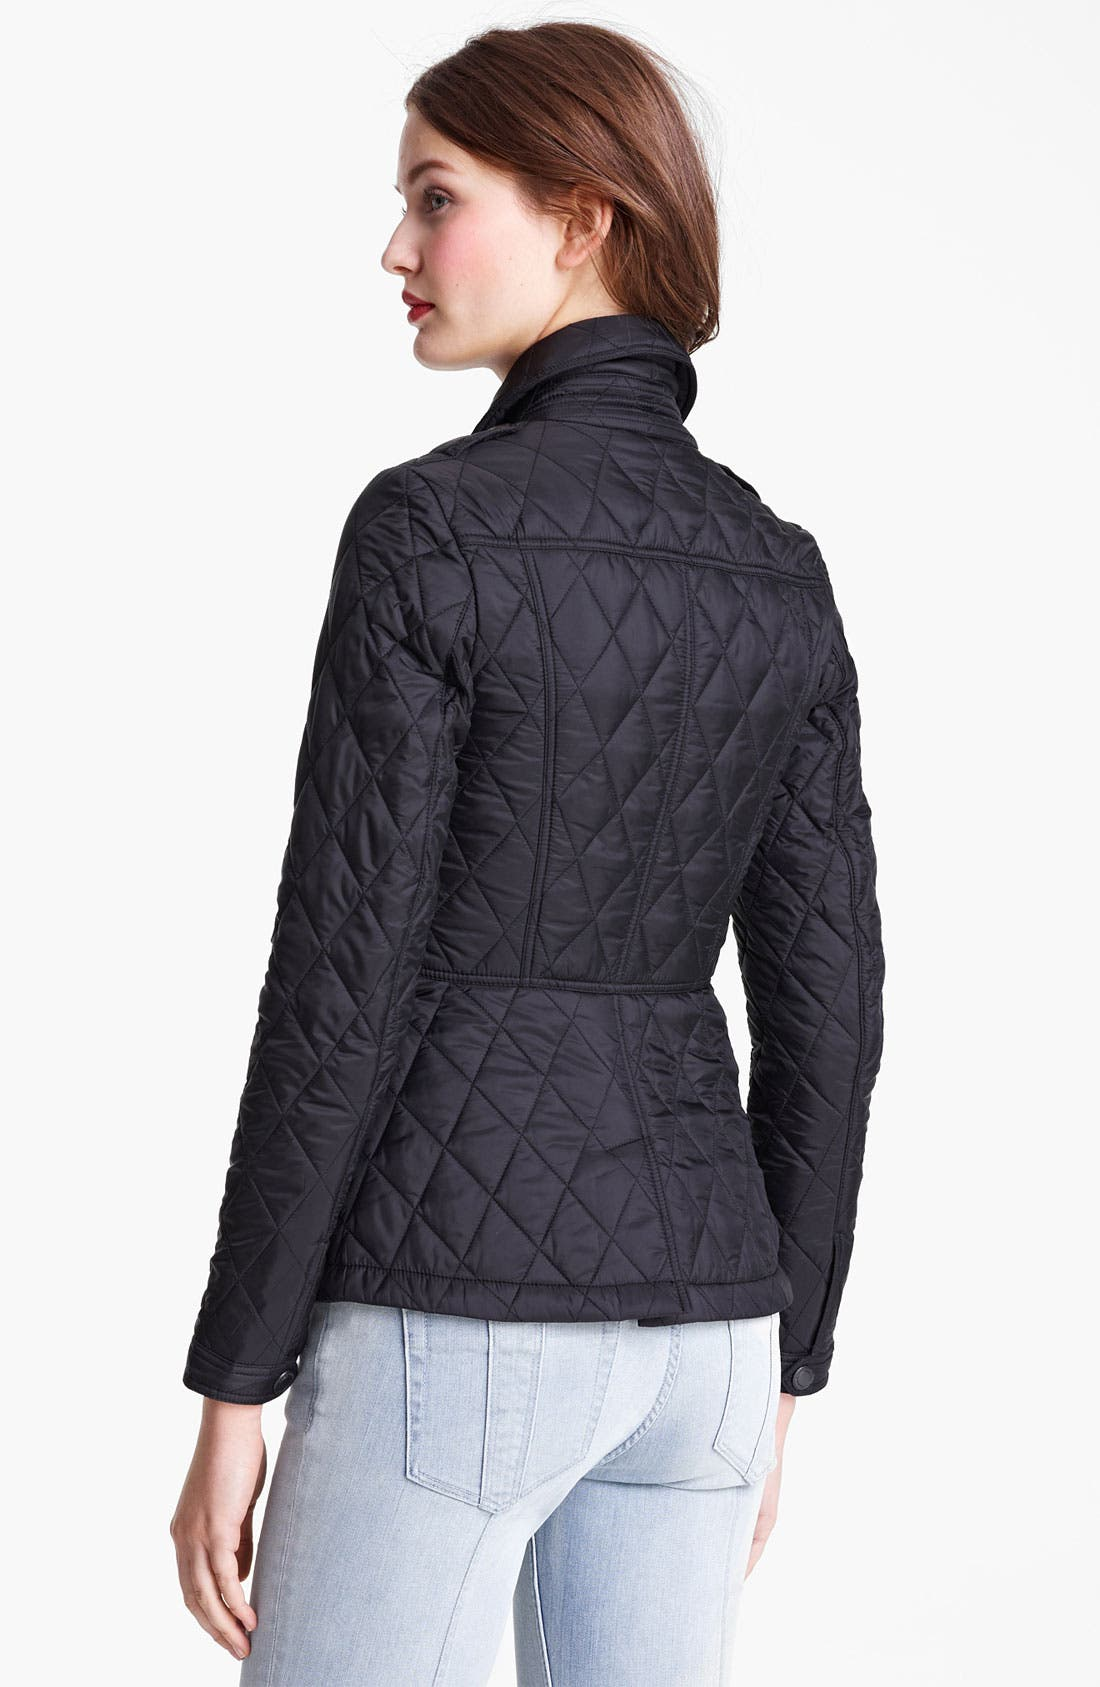 'Ivymoore' Quilted Zip Jacket,                             Alternate thumbnail 2, color,                             001